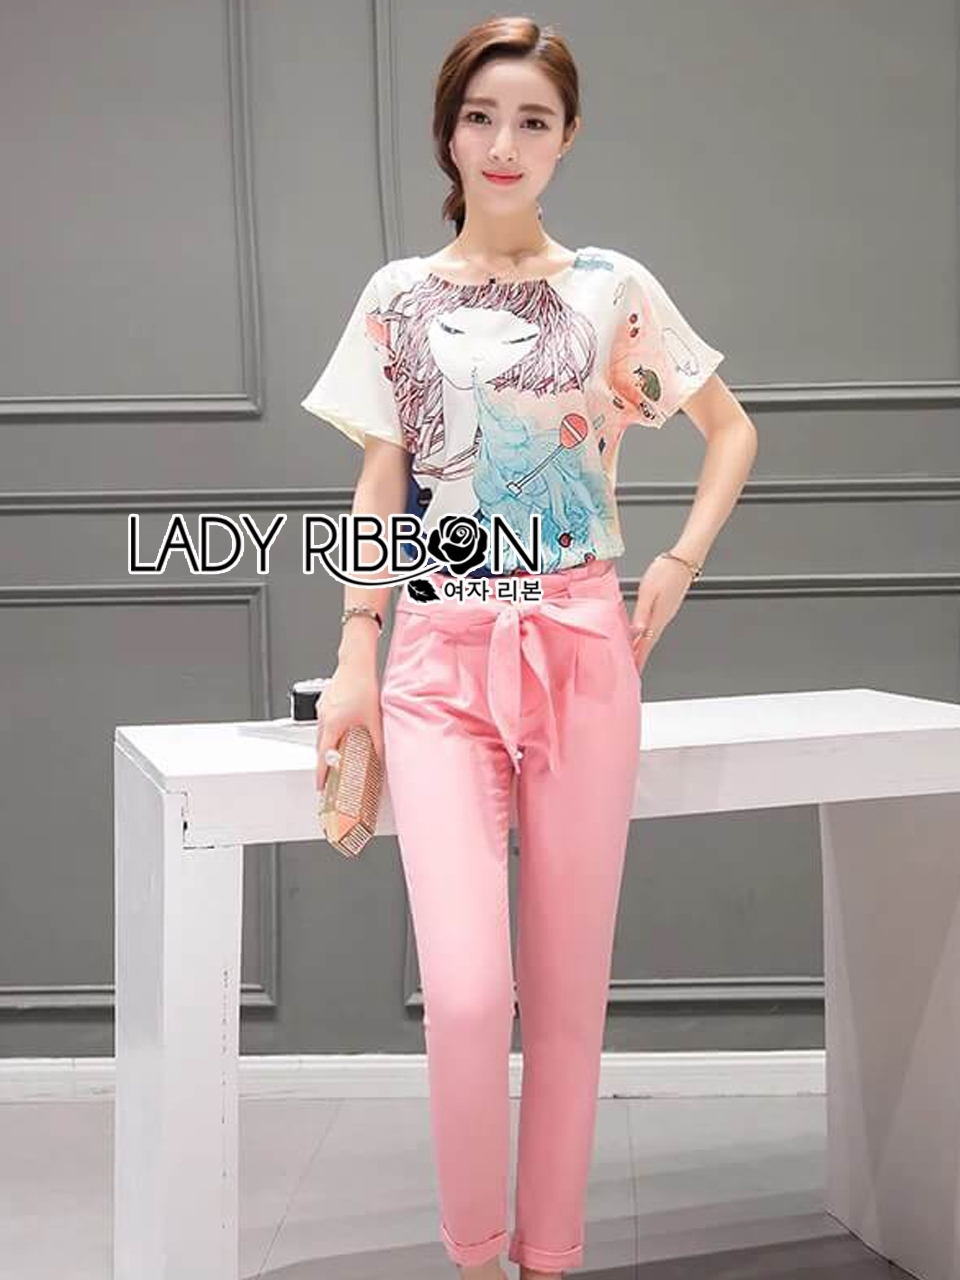 Lady Ribbon's Made Lady Margie Playful Printed Top and Pink Ribbon Pants Set